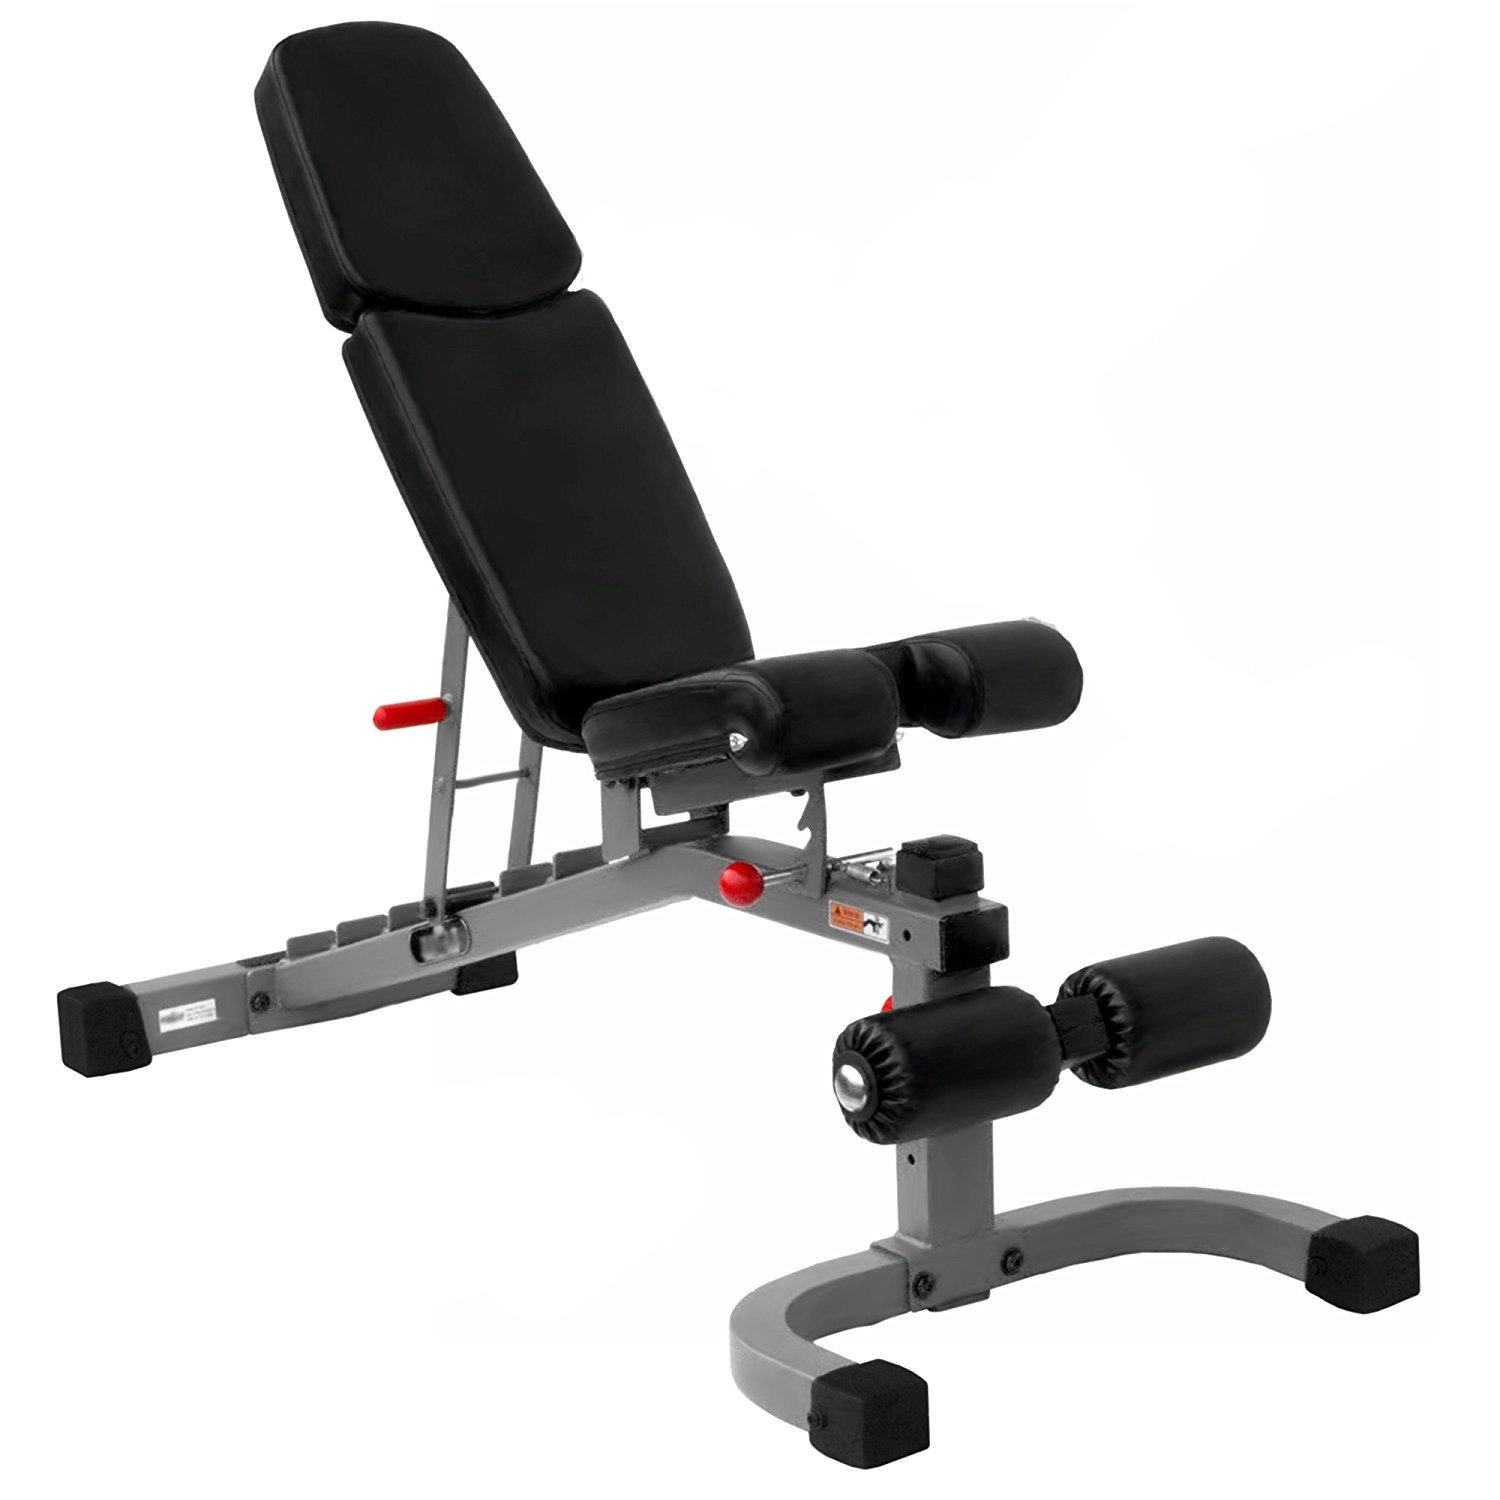 Craigslist Weight Bench | Weight Bench on Sale | Workout Bench and Weight Set